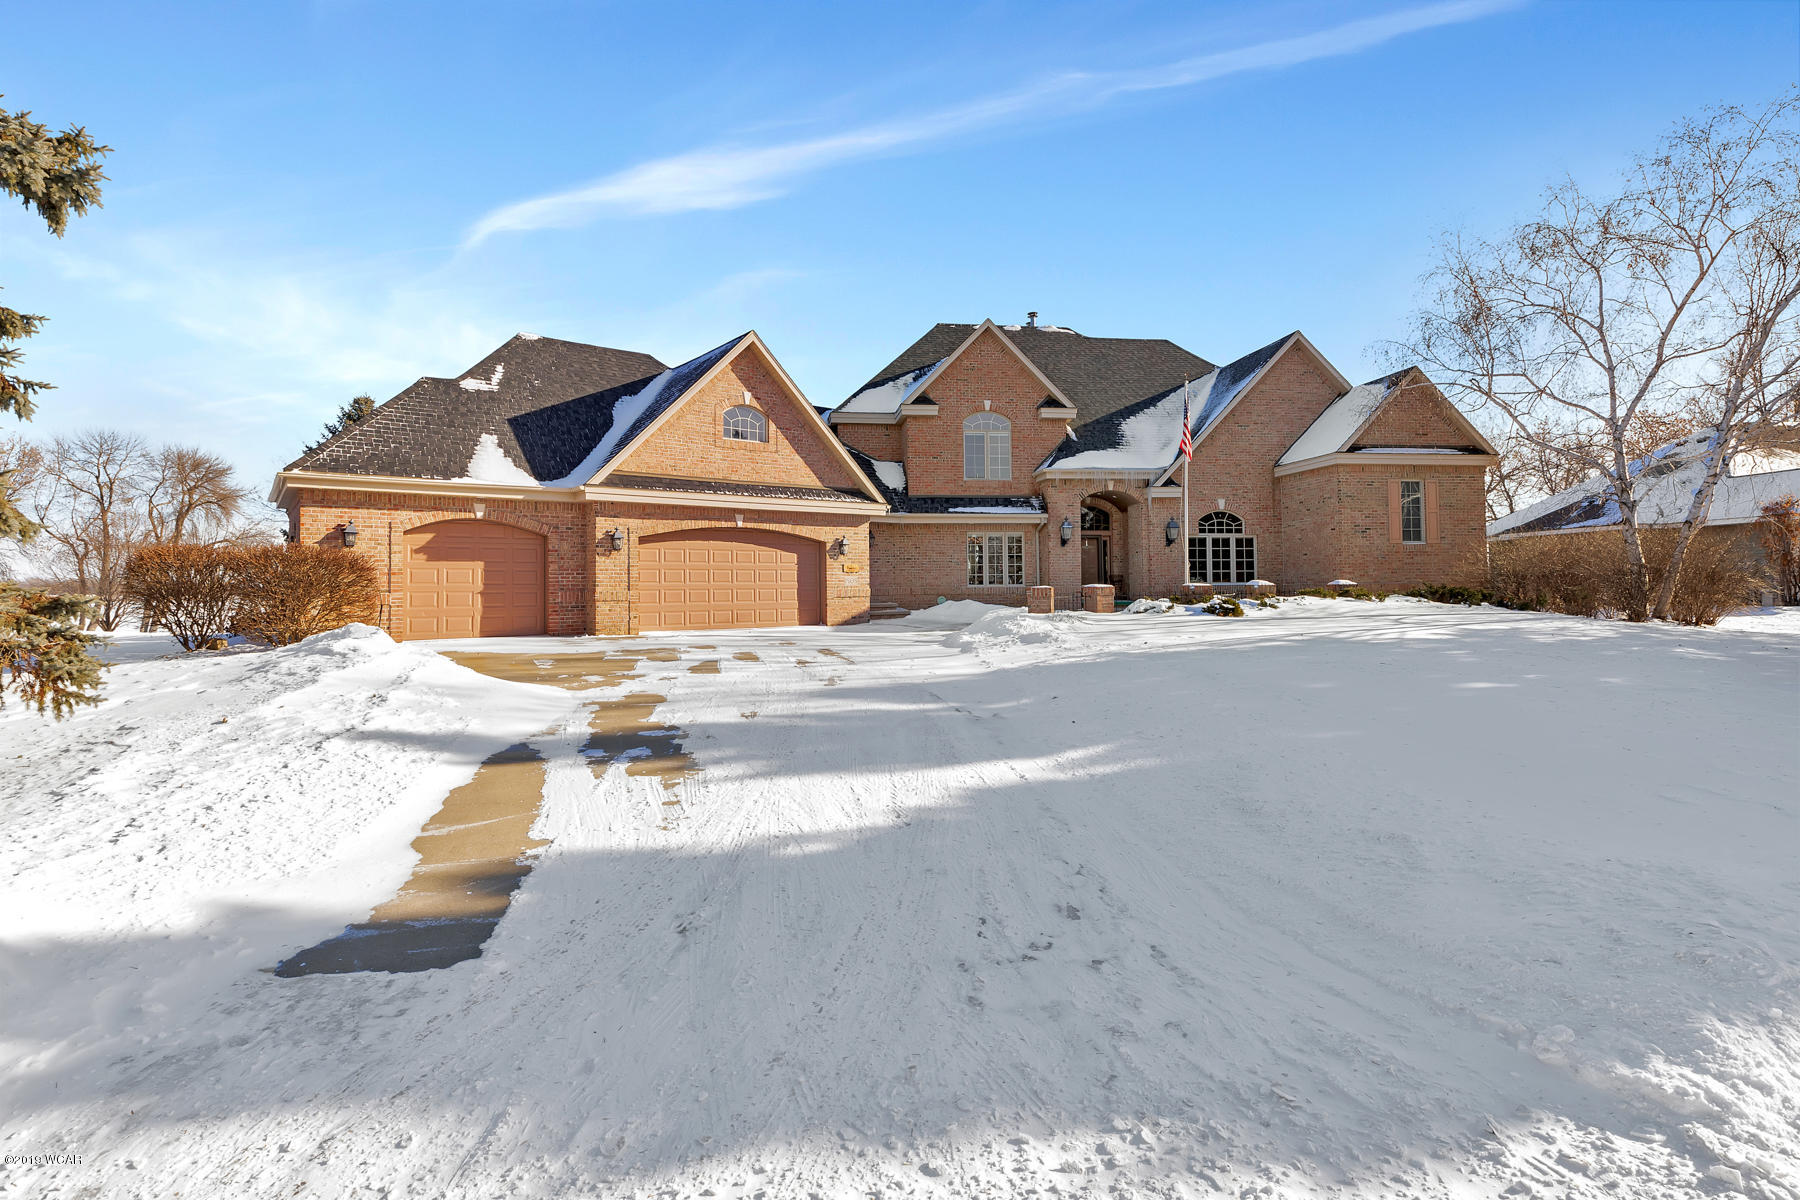 1505 Country Club Drive,Willmar,3 Bedrooms Bedrooms,4 BathroomsBathrooms,Single Family,Country Club Drive,6033371